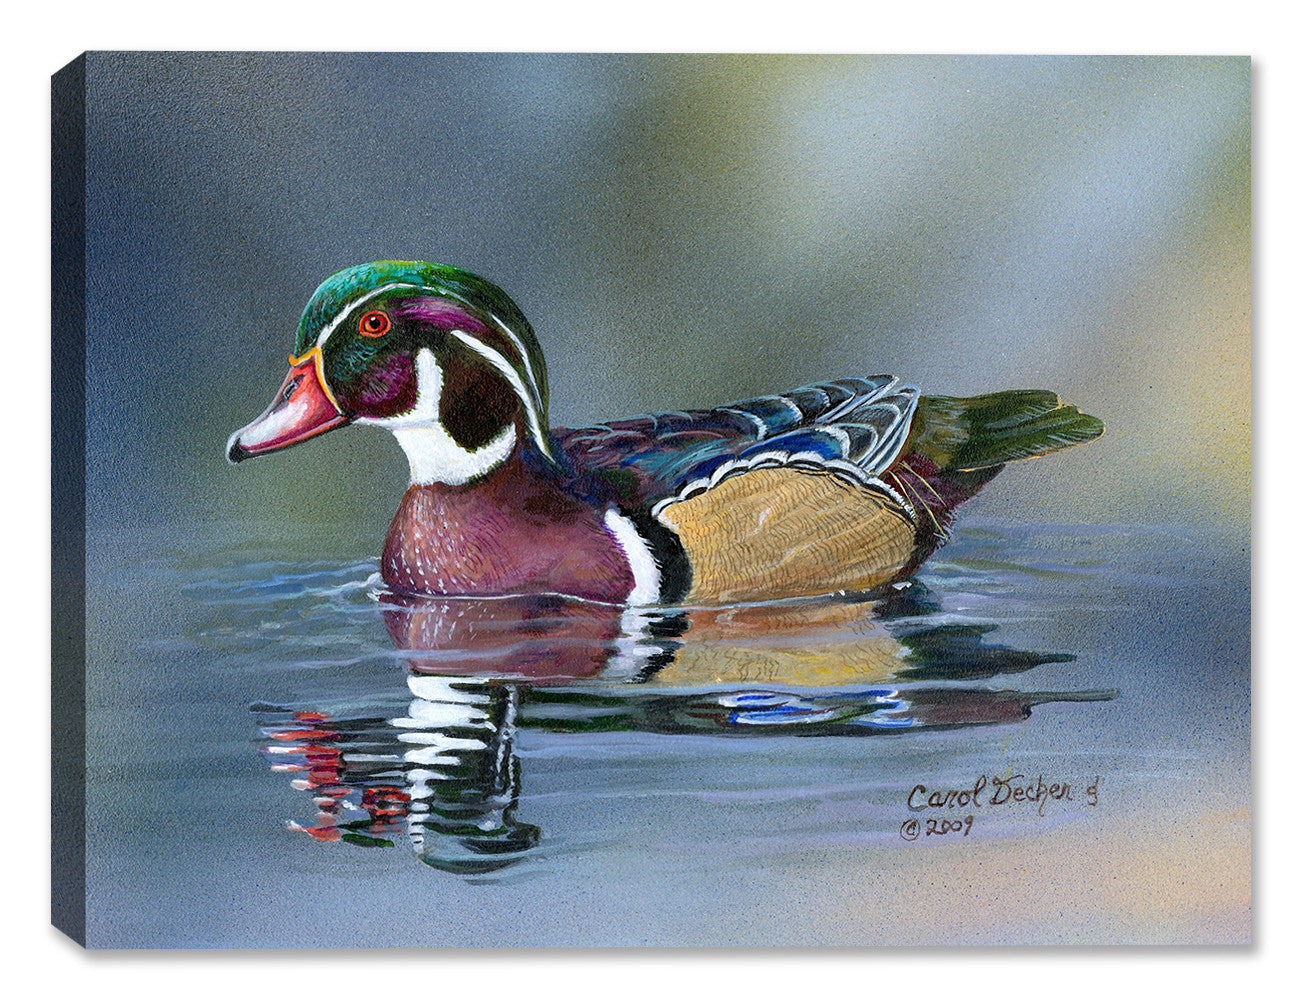 Wood Duck by Carol Decker - Canvas Art - Canvas Art Plus